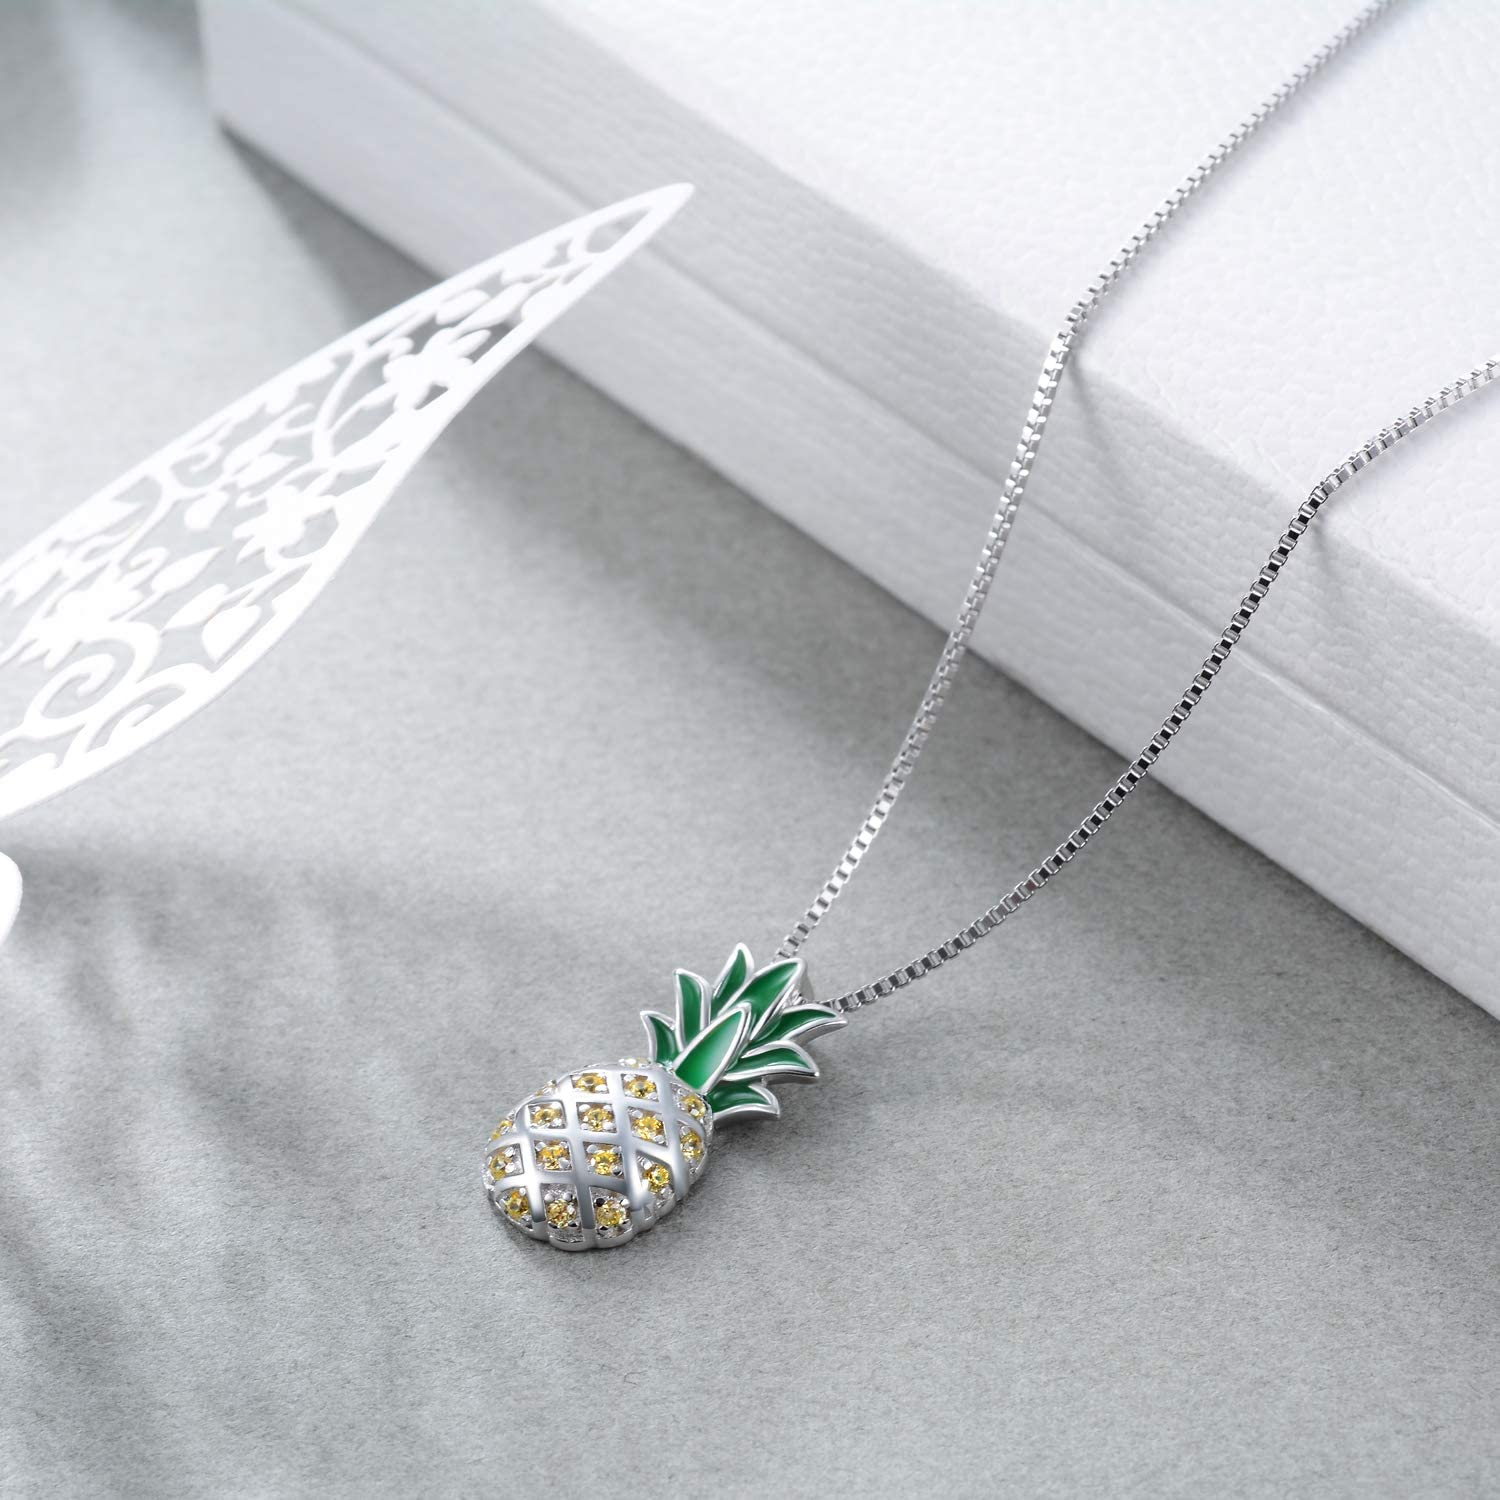 Sterling Silver Pineapple Pendant Necklace Jewellery Gift for Women Teens Girls